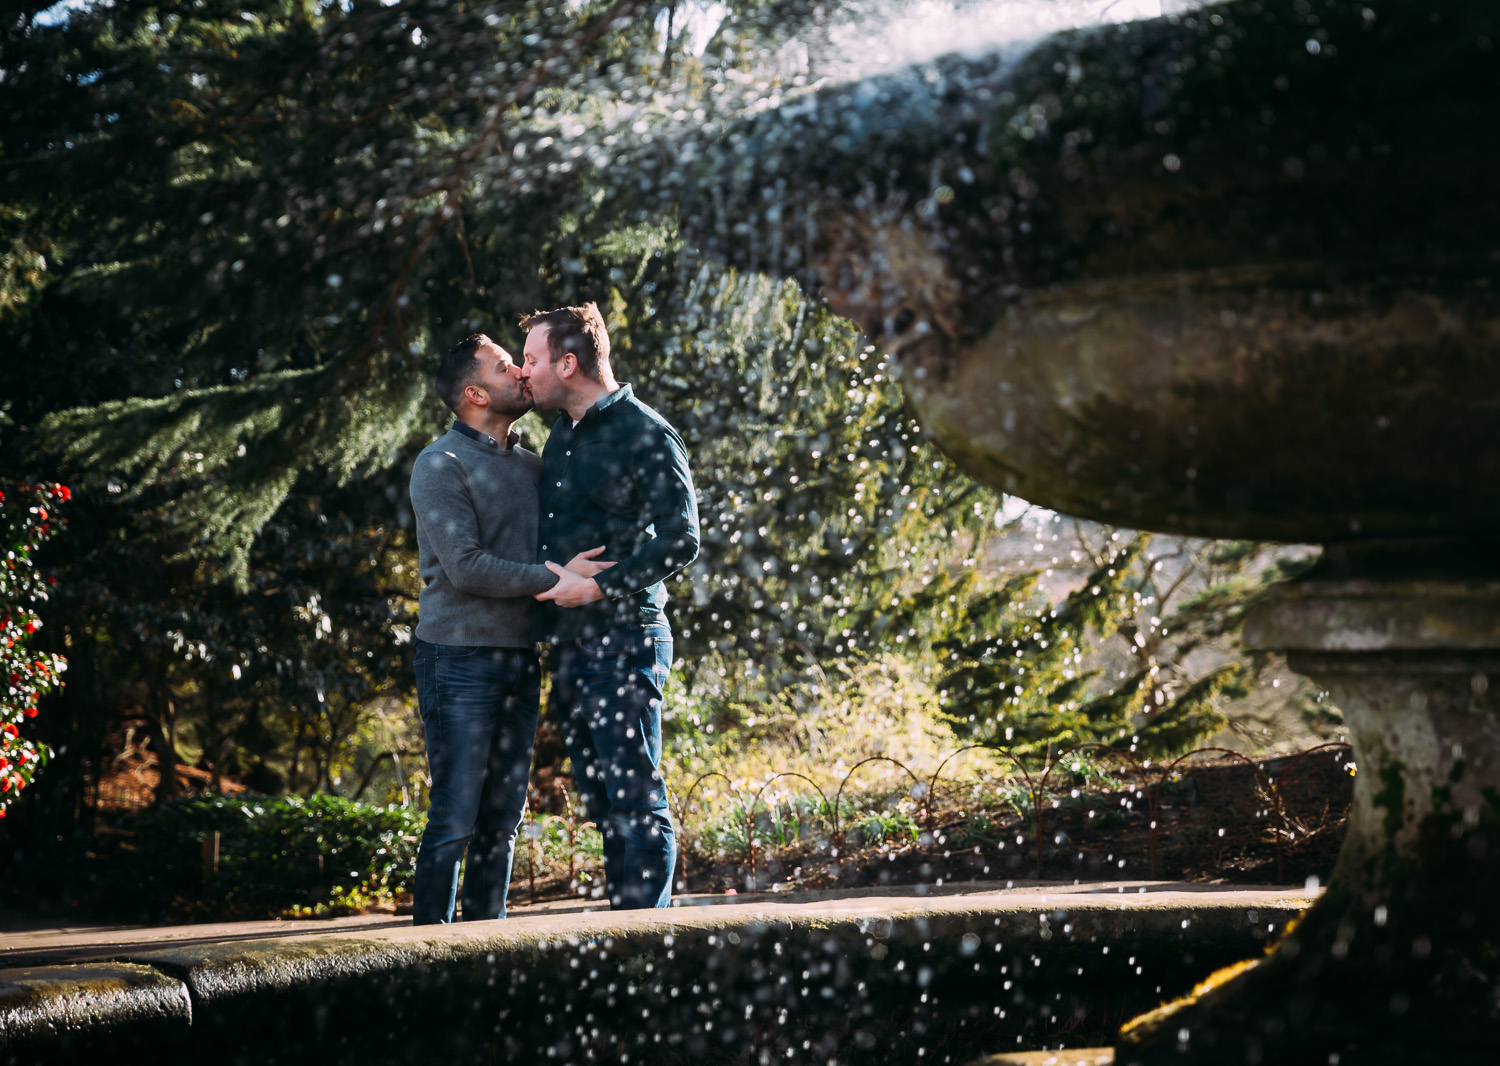 LGBTQ couple kissing near fountain in botanical gardens